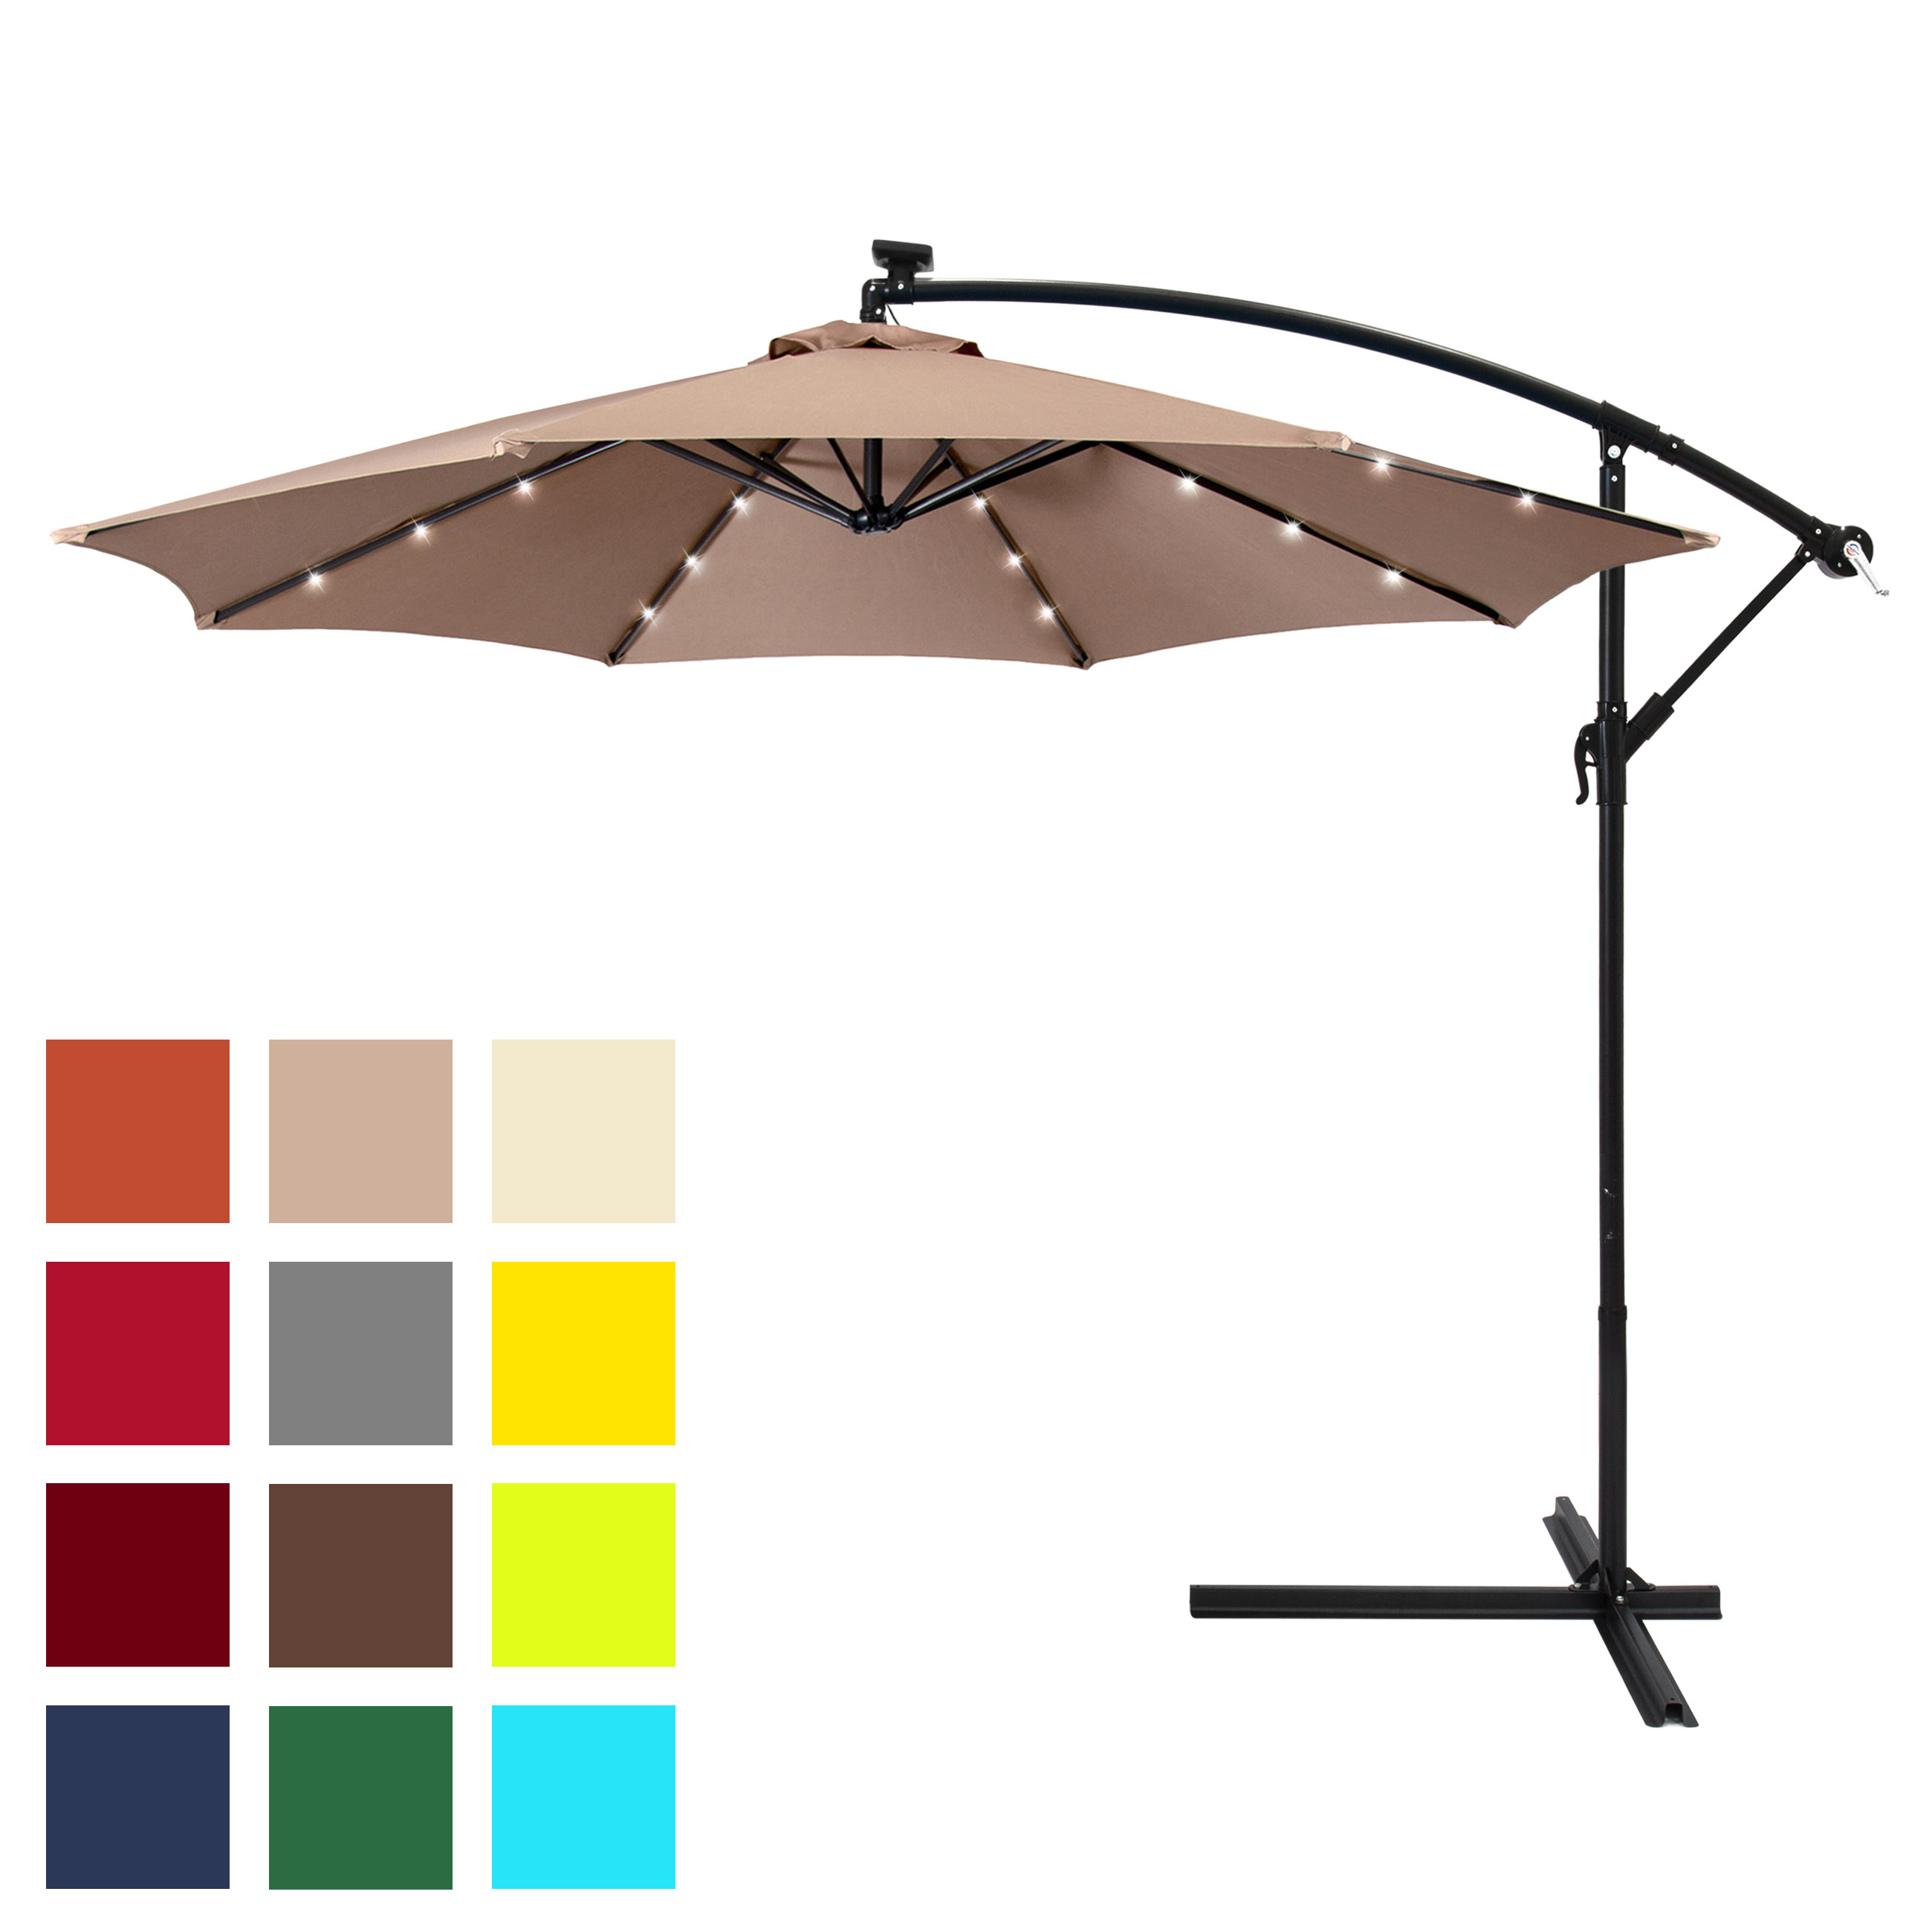 Best Choice Products 10Ft Solar Led Offset Patio Umbrella W/ Easy Tilt Adjustment – Tan Throughout Most Recent Solar Powered Led Patio Umbrellas (View 11 of 20)